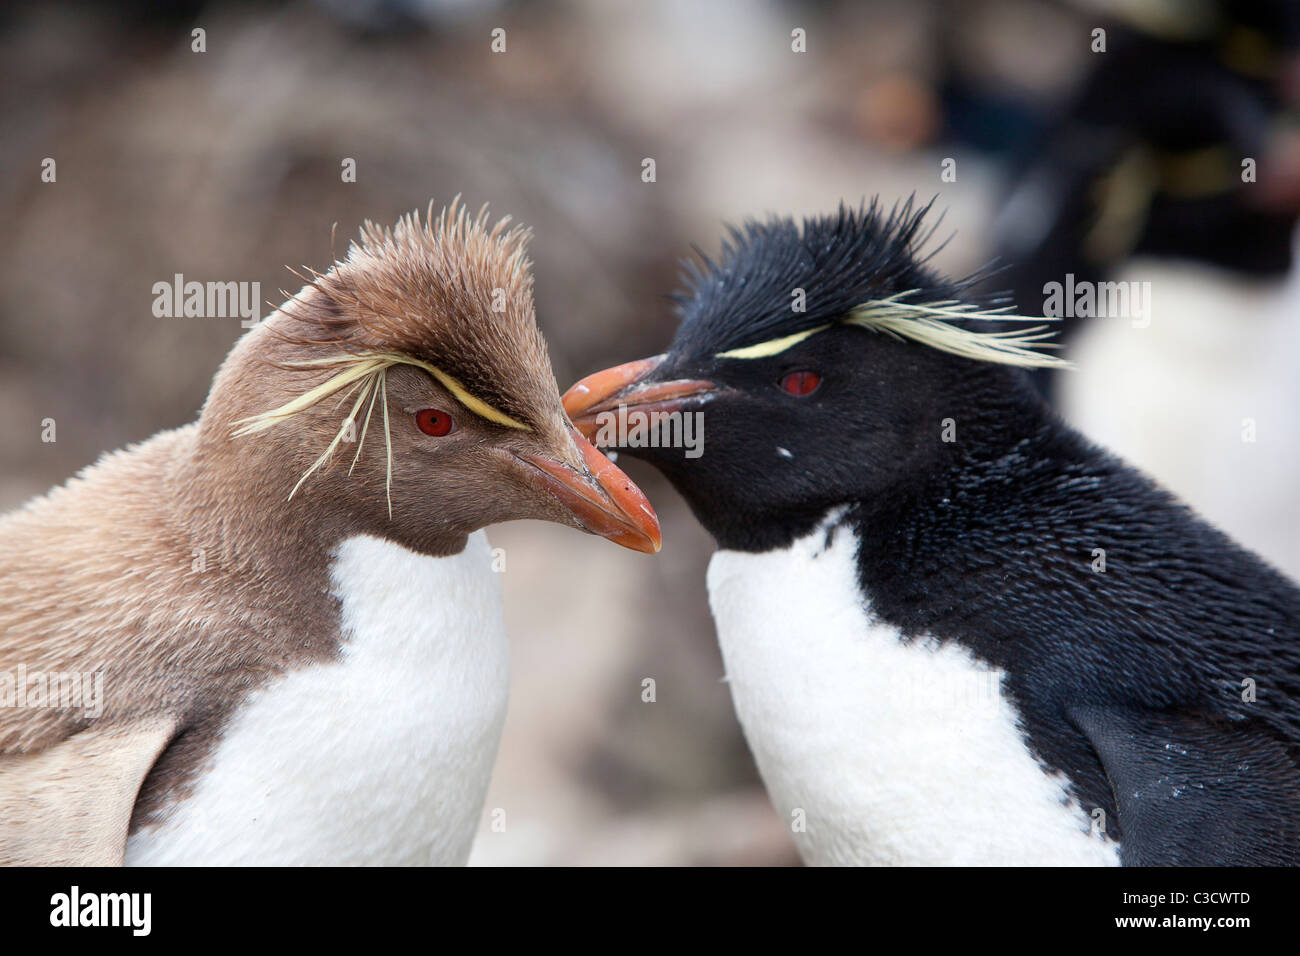 Leucistic Rockhopper Penguin (Eudyptes chrysocome chrysocome) standing next to an individual in normal colors - Stock Image